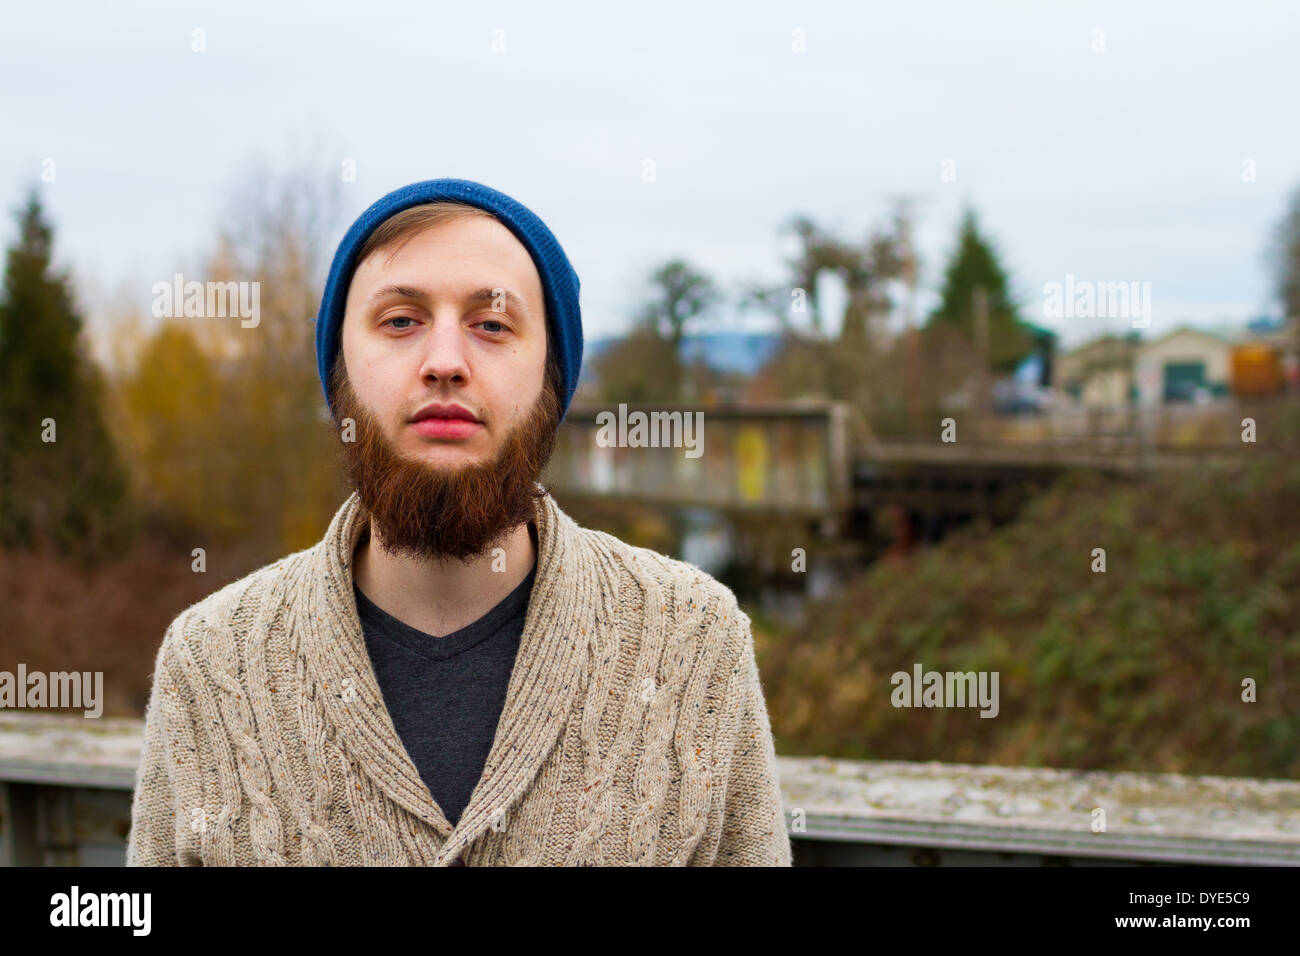 Hipster guy showing modern male fashion in this trendy portrait. - Stock Image